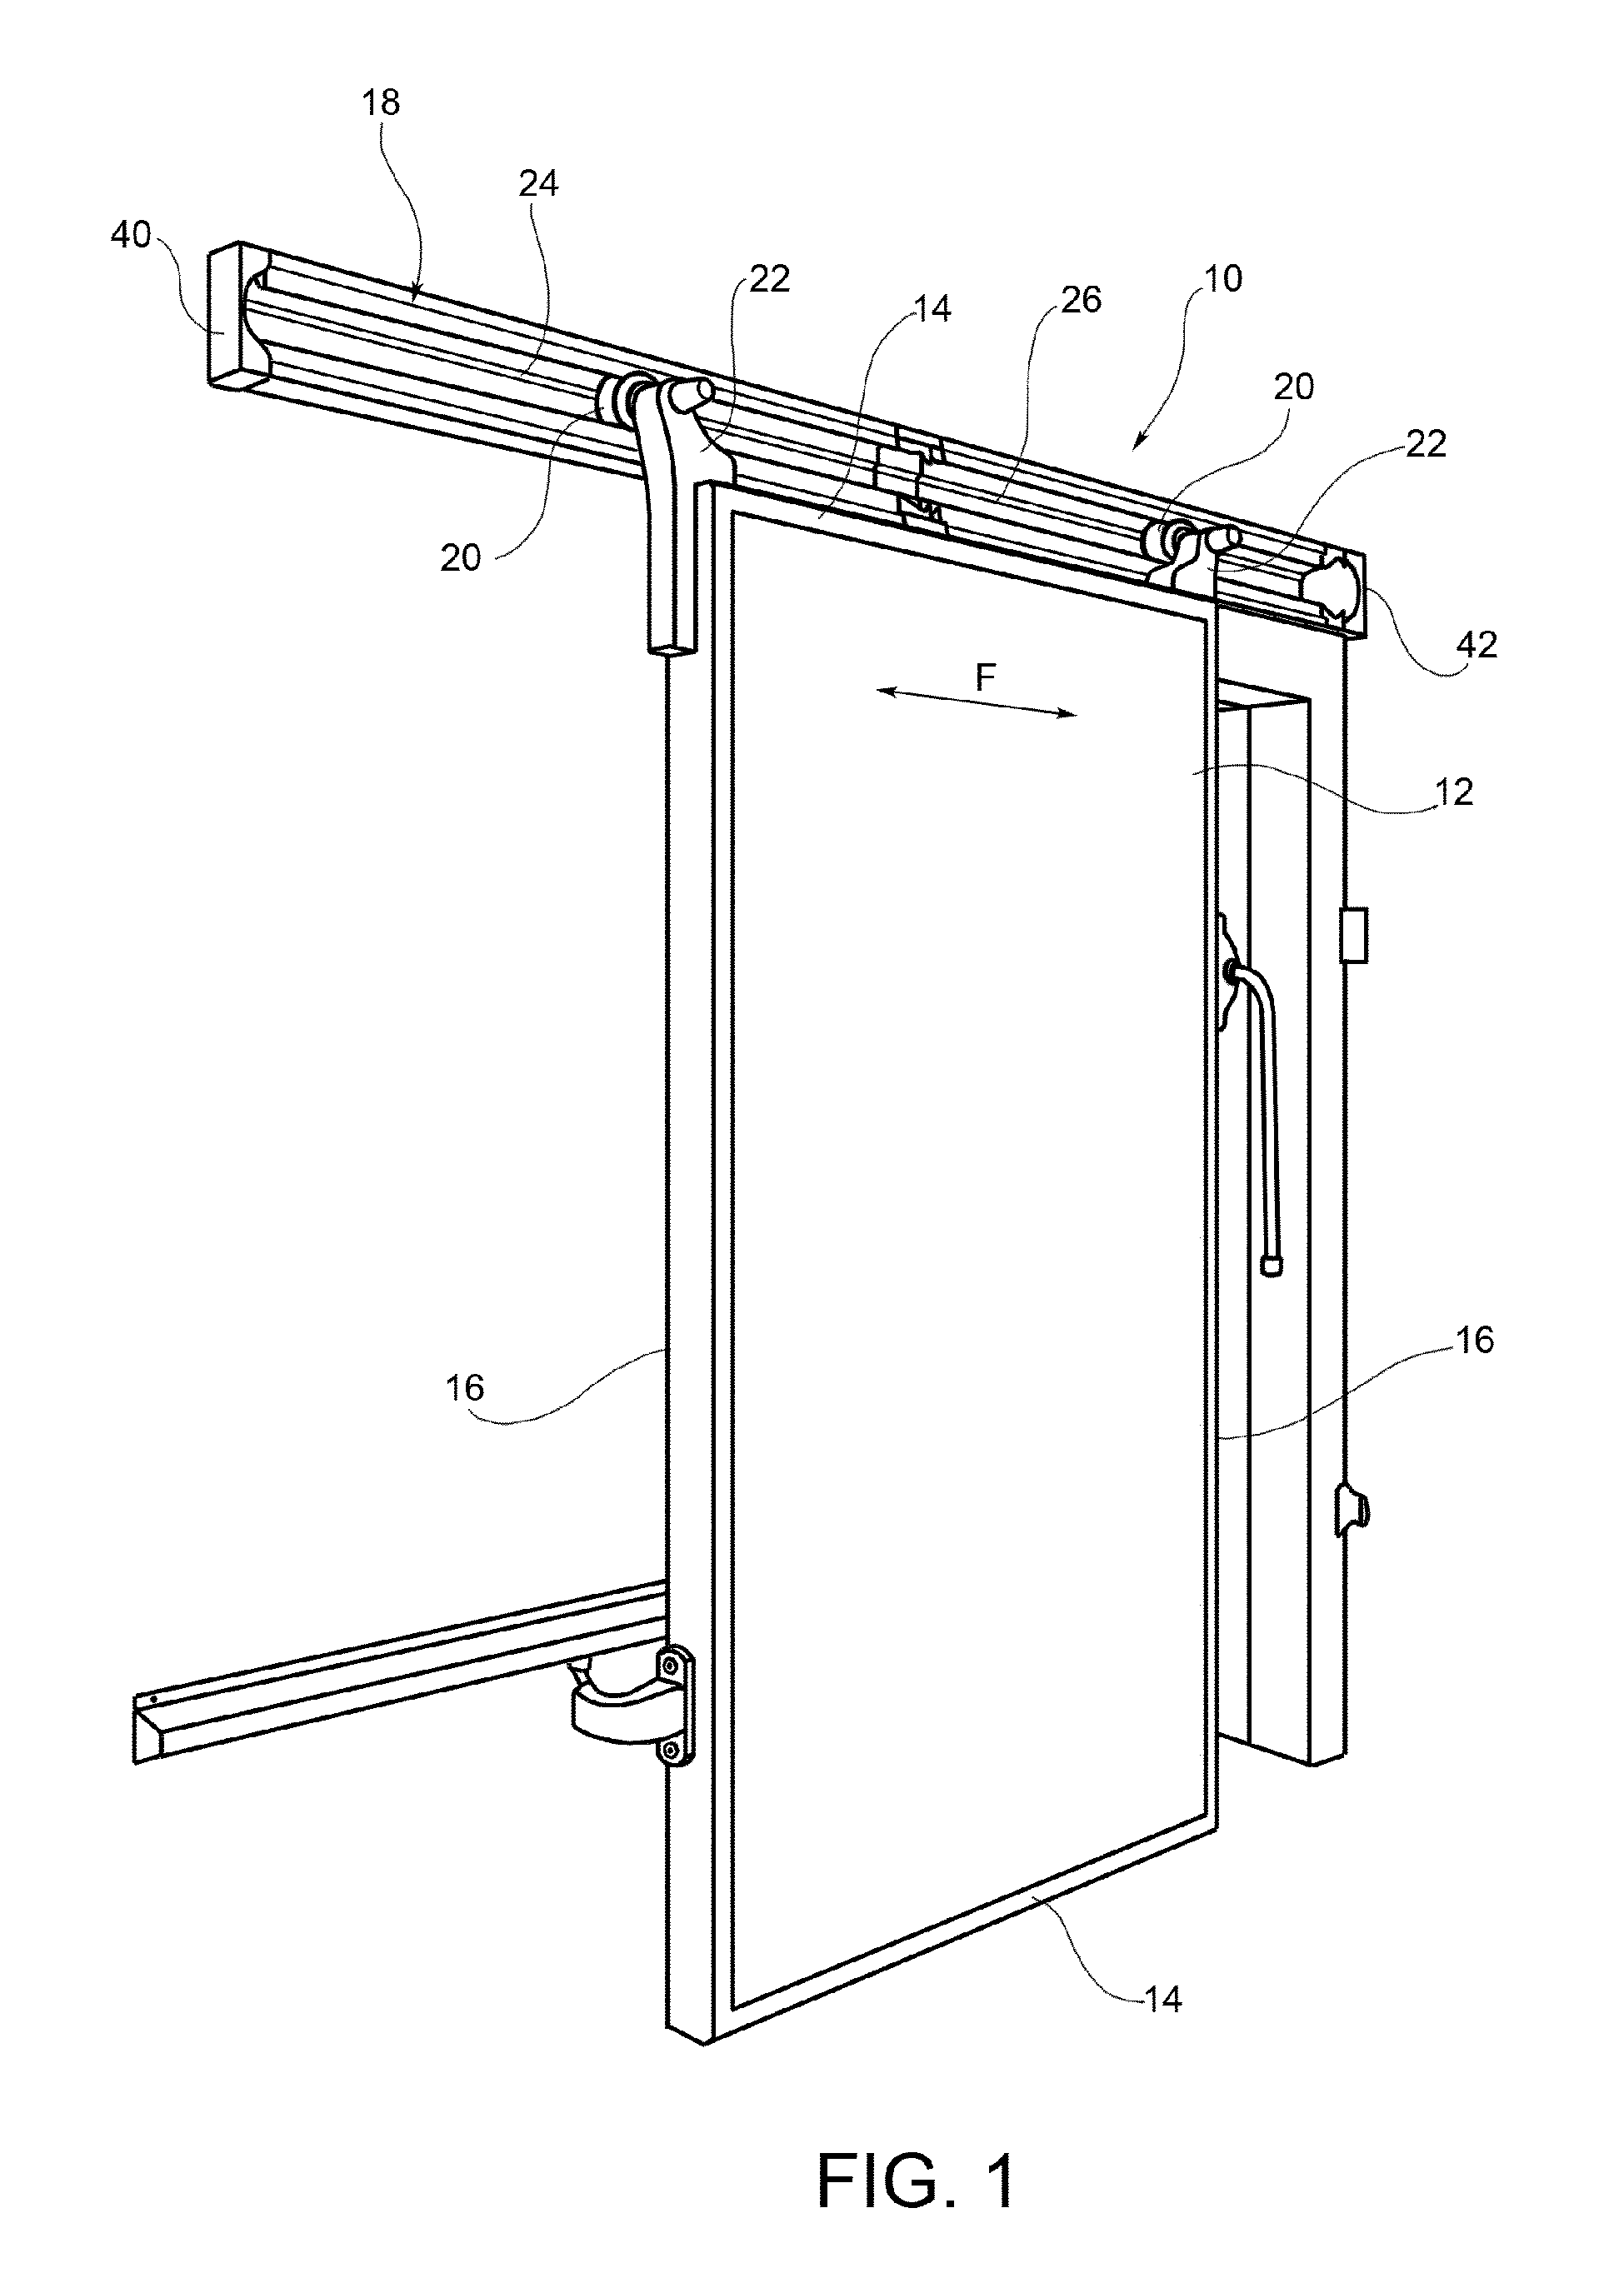 How to draw a sliding door in plan saudireiki patent ep2584131a1 sliding door with reversible system how to draw sliding doors floor plan vtopaller Gallery